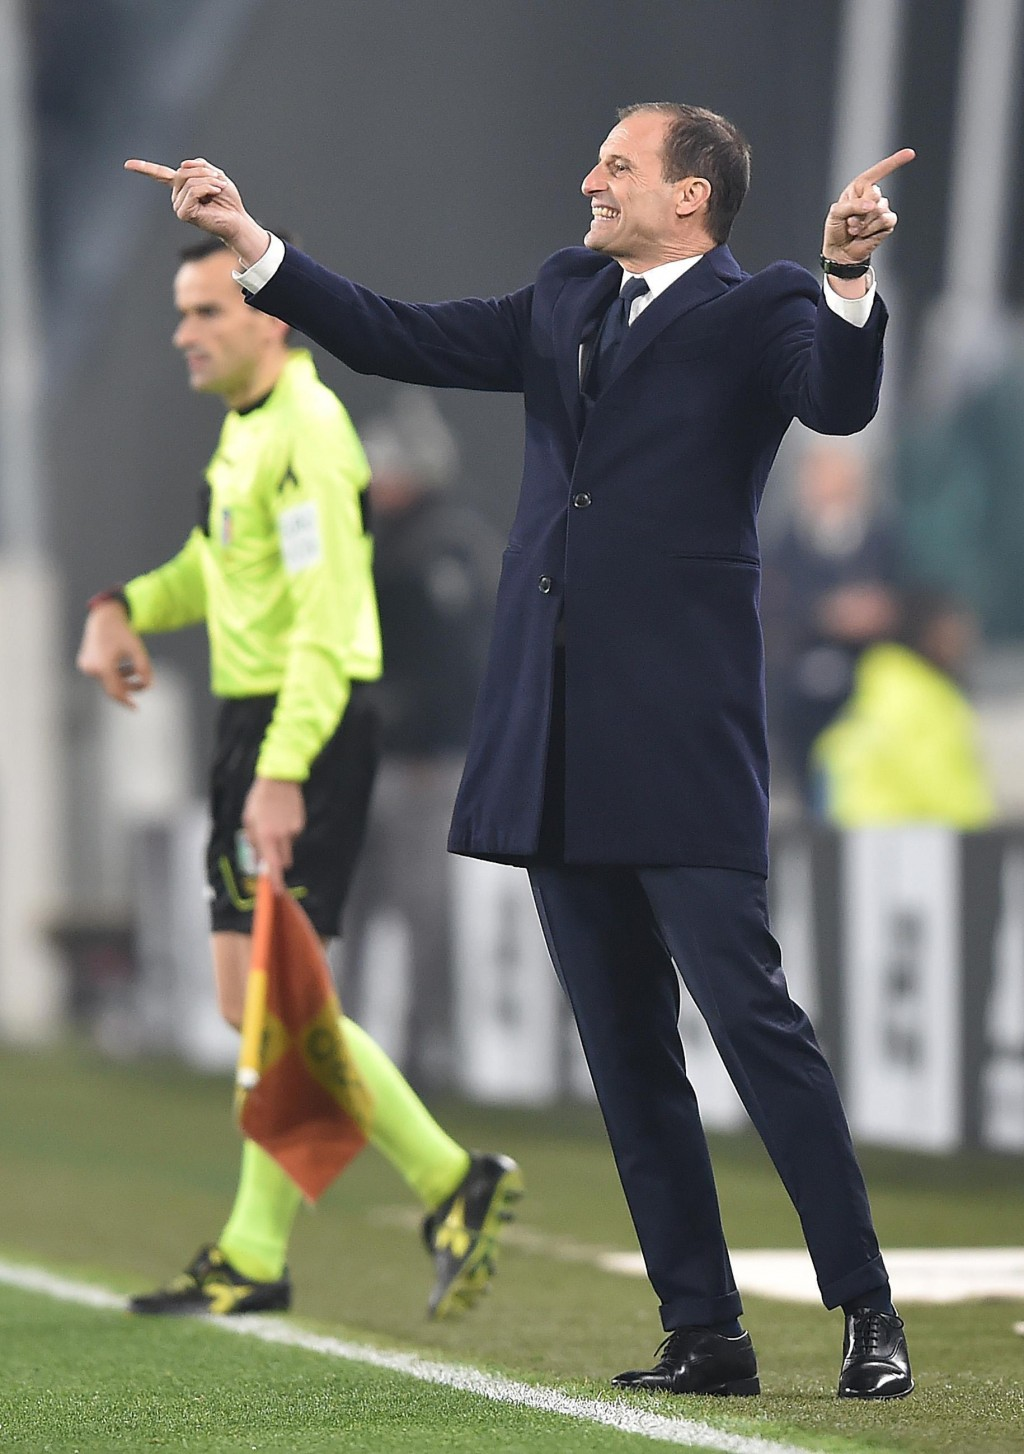 Juventus coach Massimiliano Allegri gestures during the Serie A soccer match between Juventus and Inter Milan at the Turin Allianz stadium, Italy, Fri...